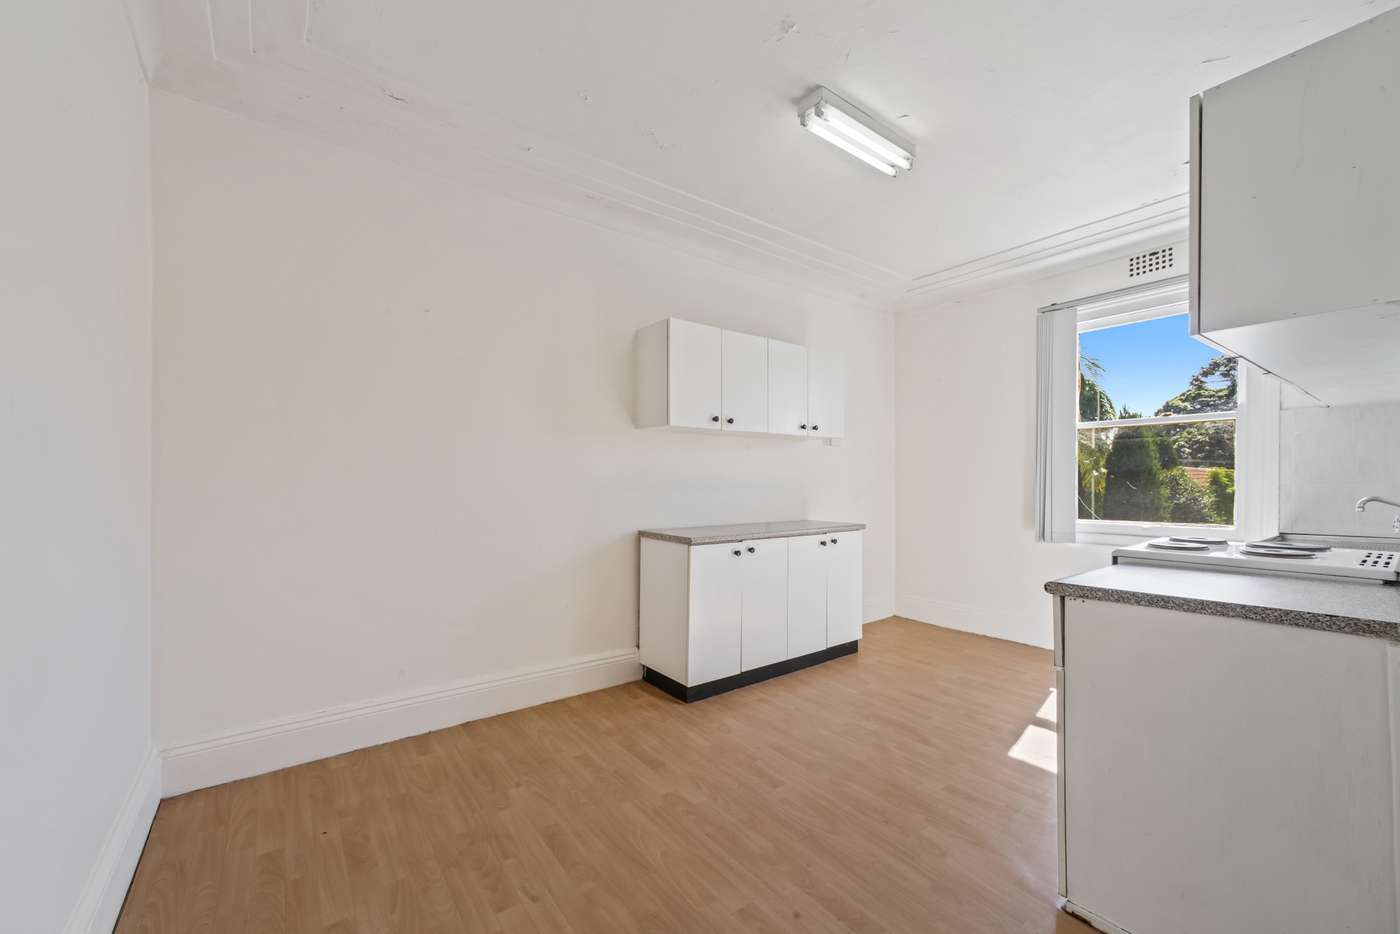 Fifth view of Homely house listing, 40 Gower Street, Ashfield NSW 2131